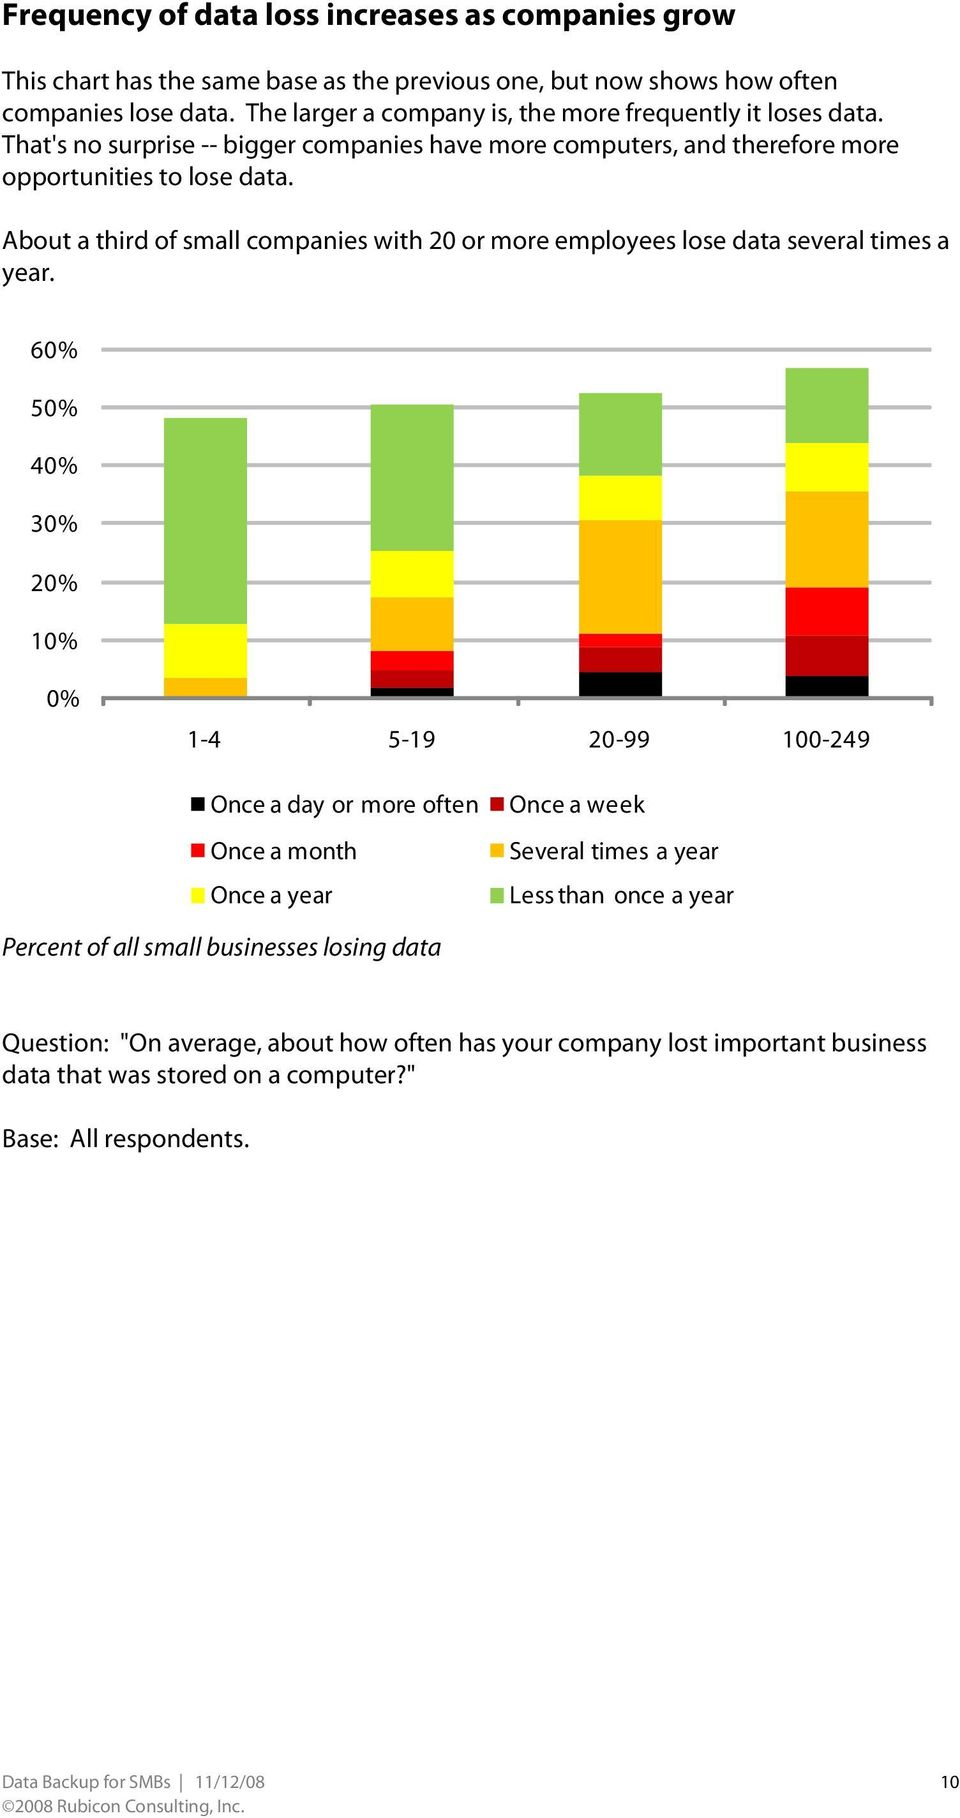 About a third of small companies with 20 or more employees lose data several times a year.